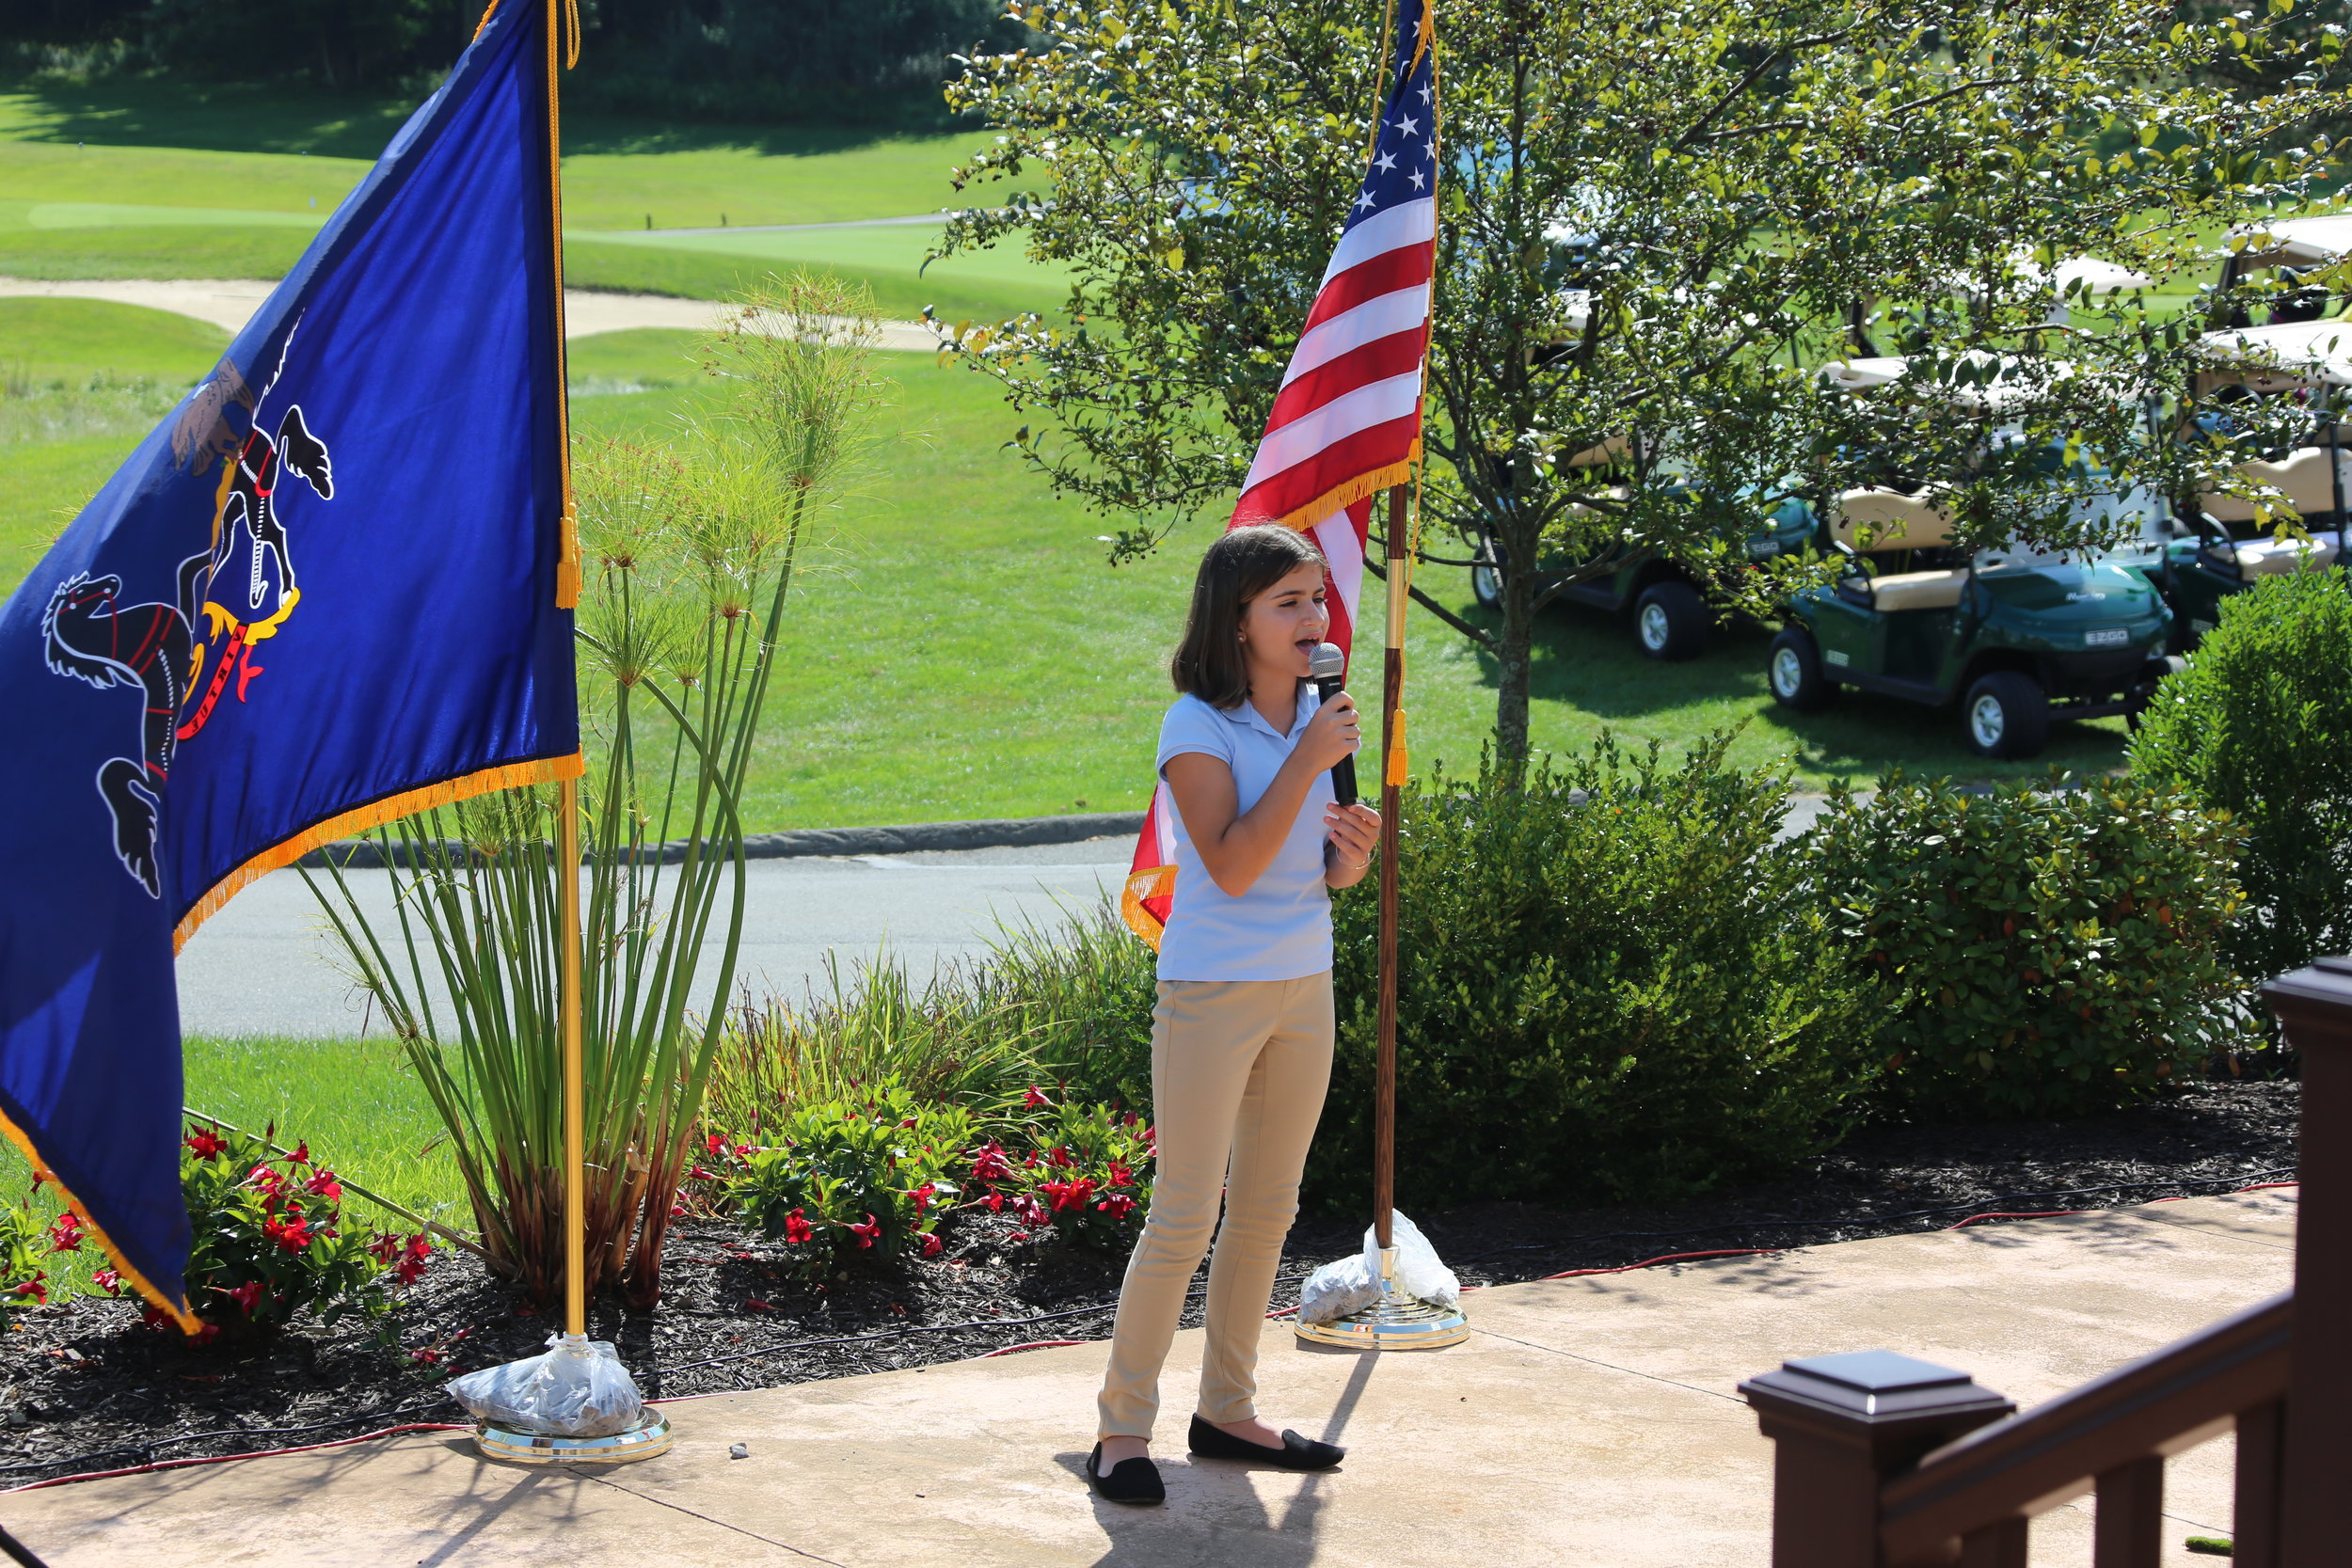 11:15 AM Opening Ceremony - Mount Airy Golf Club